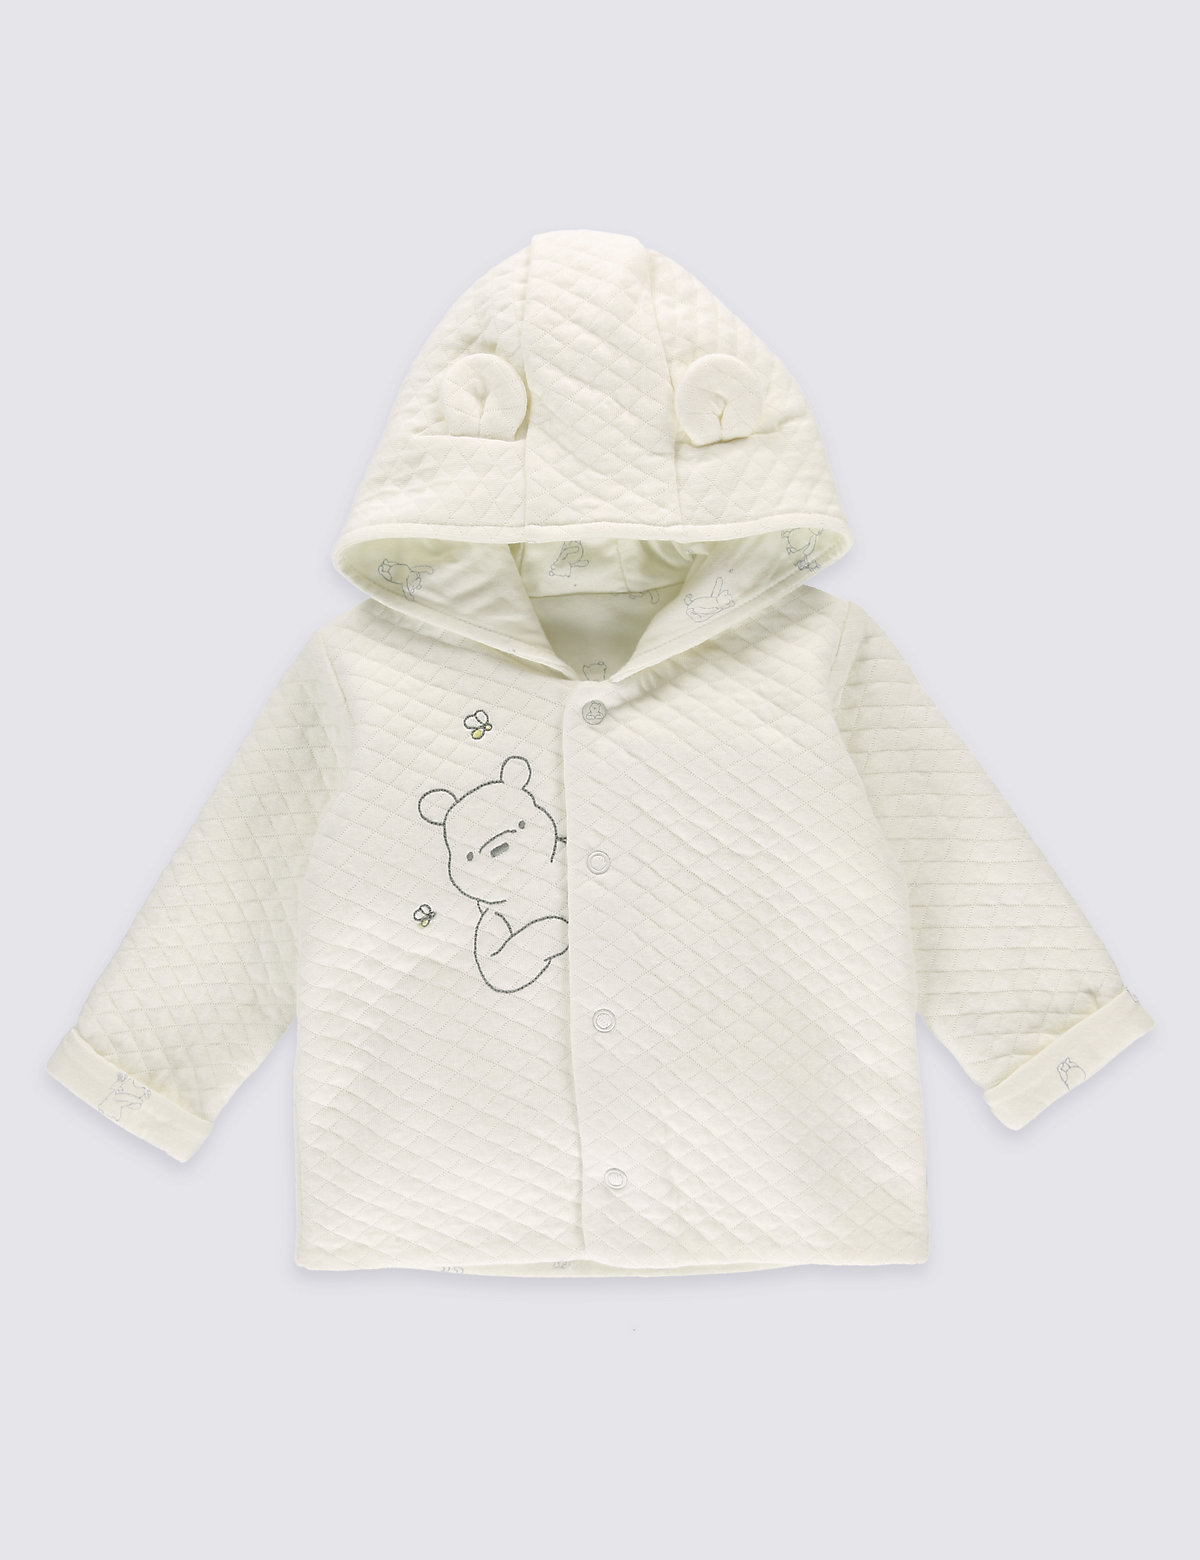 Winnie the Pooh Baby Quilted Jacket